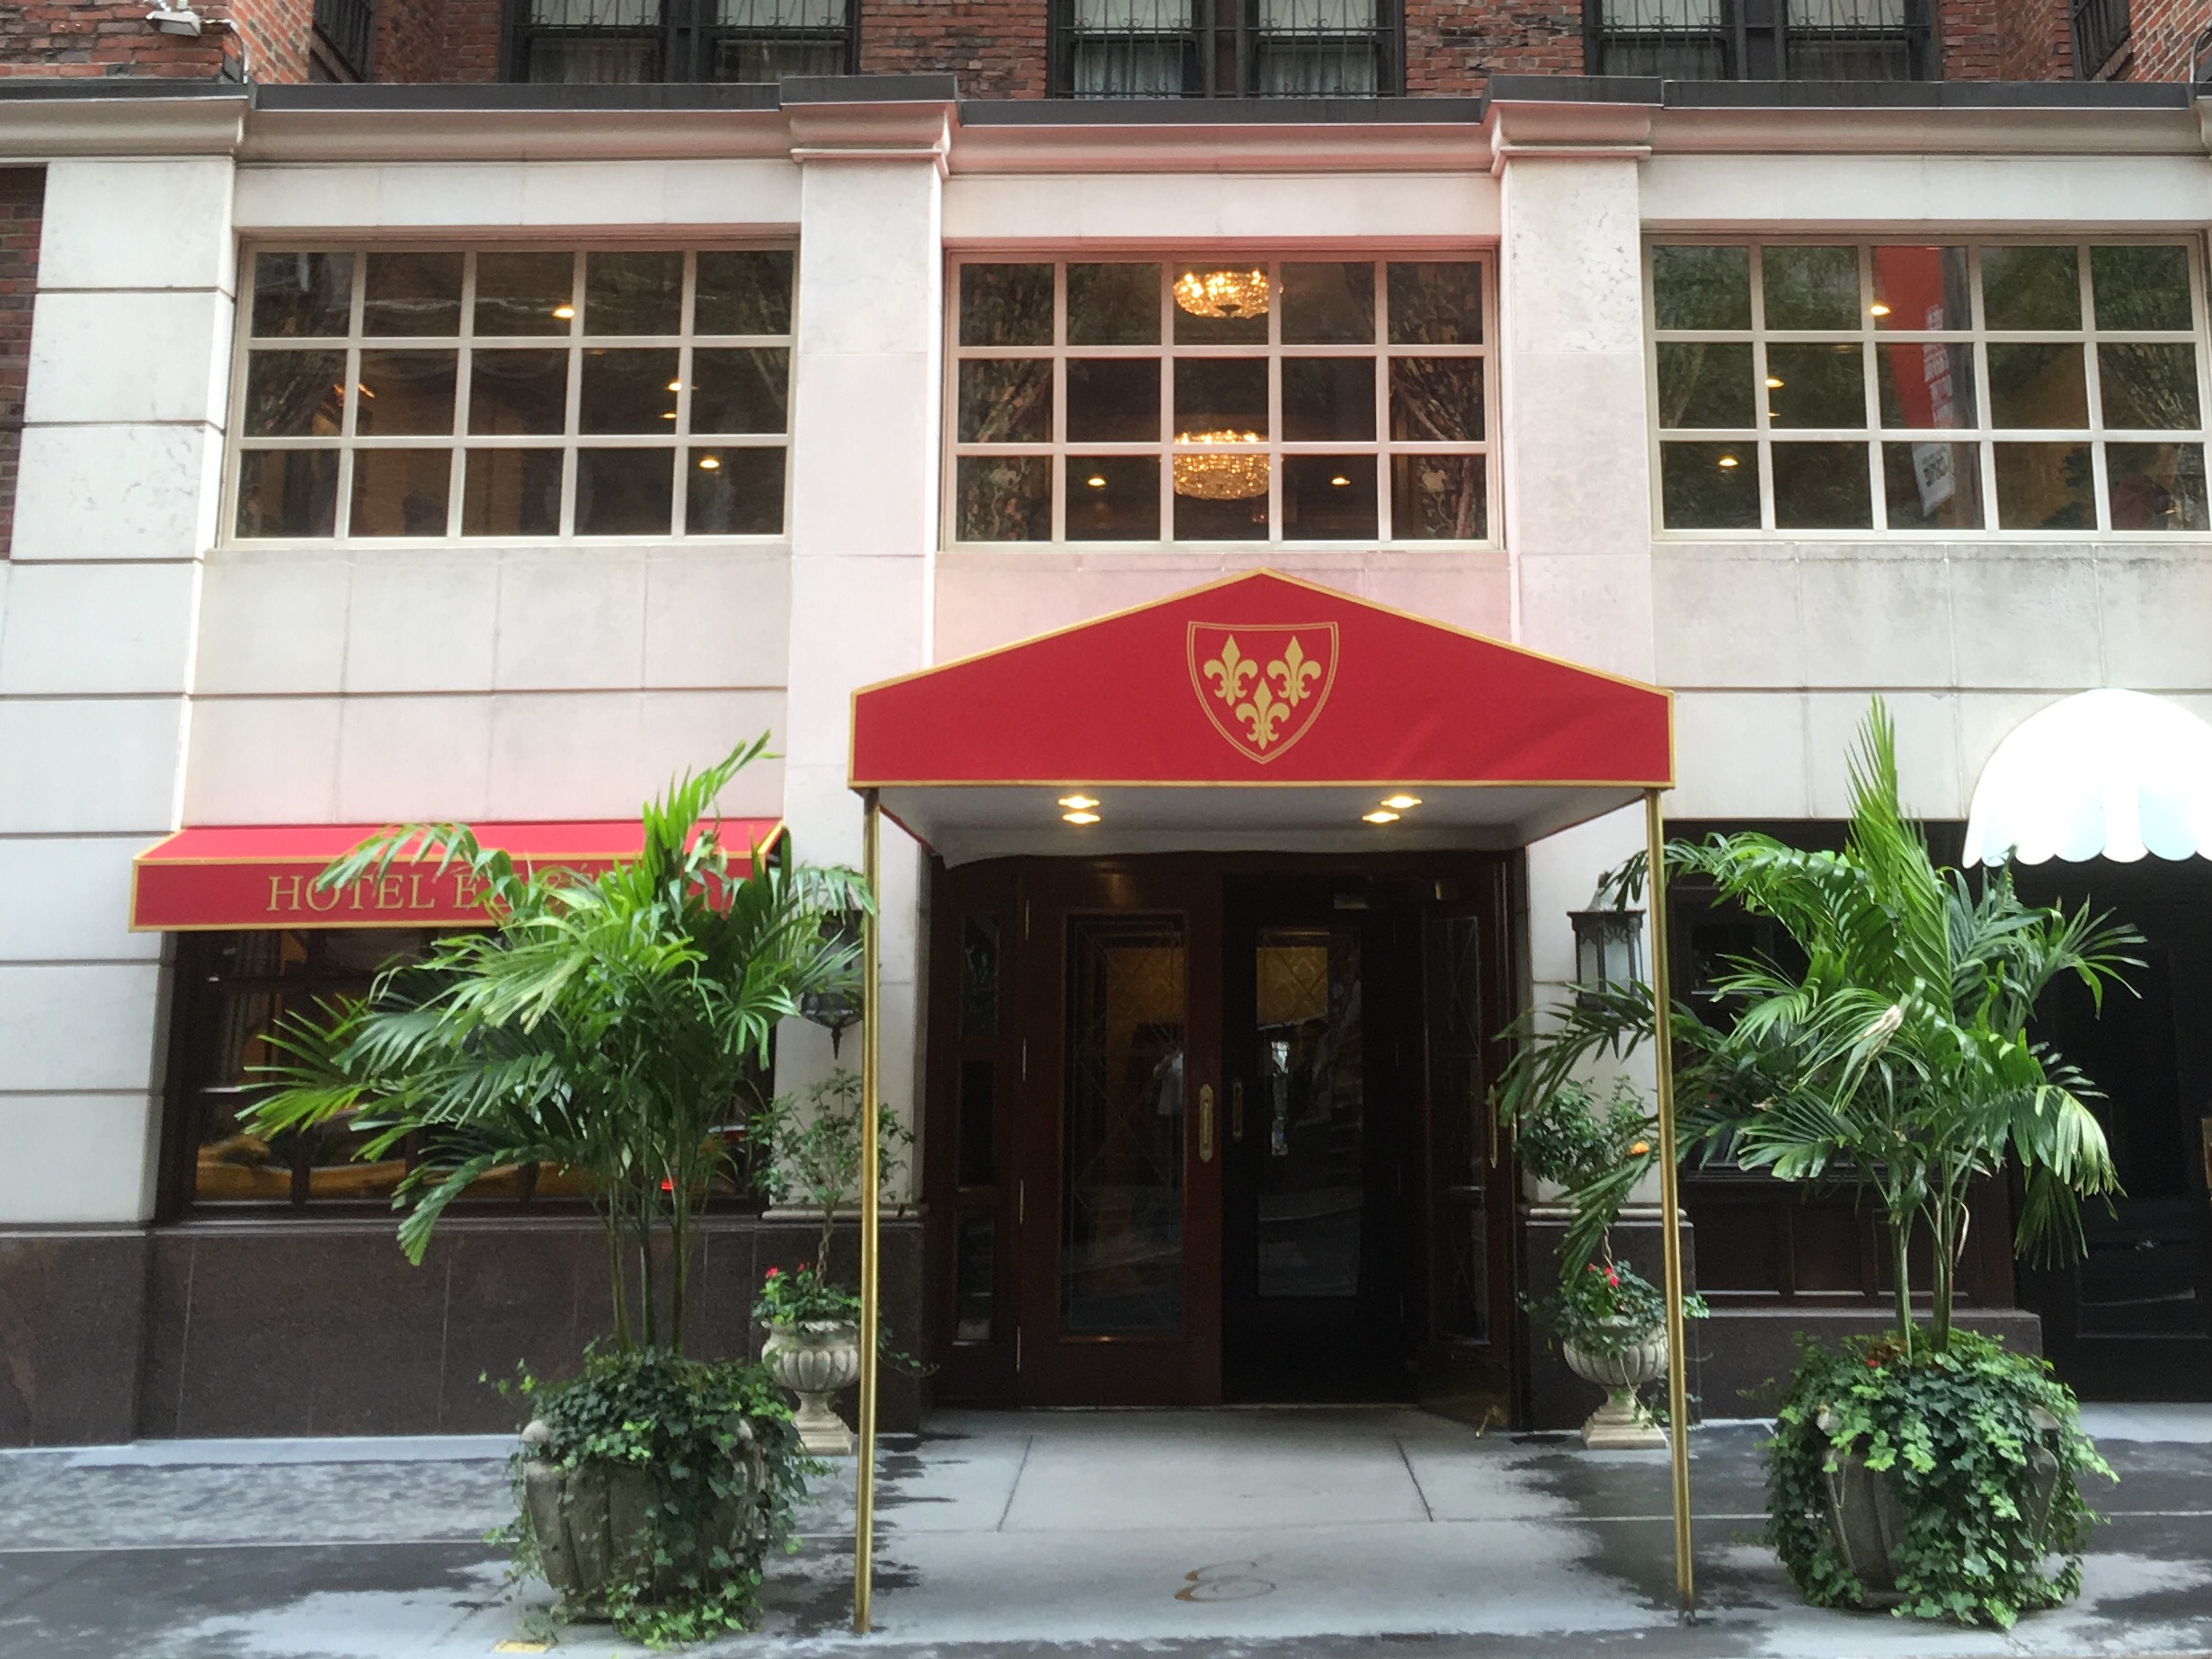 Nyc Travel The Hotel Elysee Huffpost Life